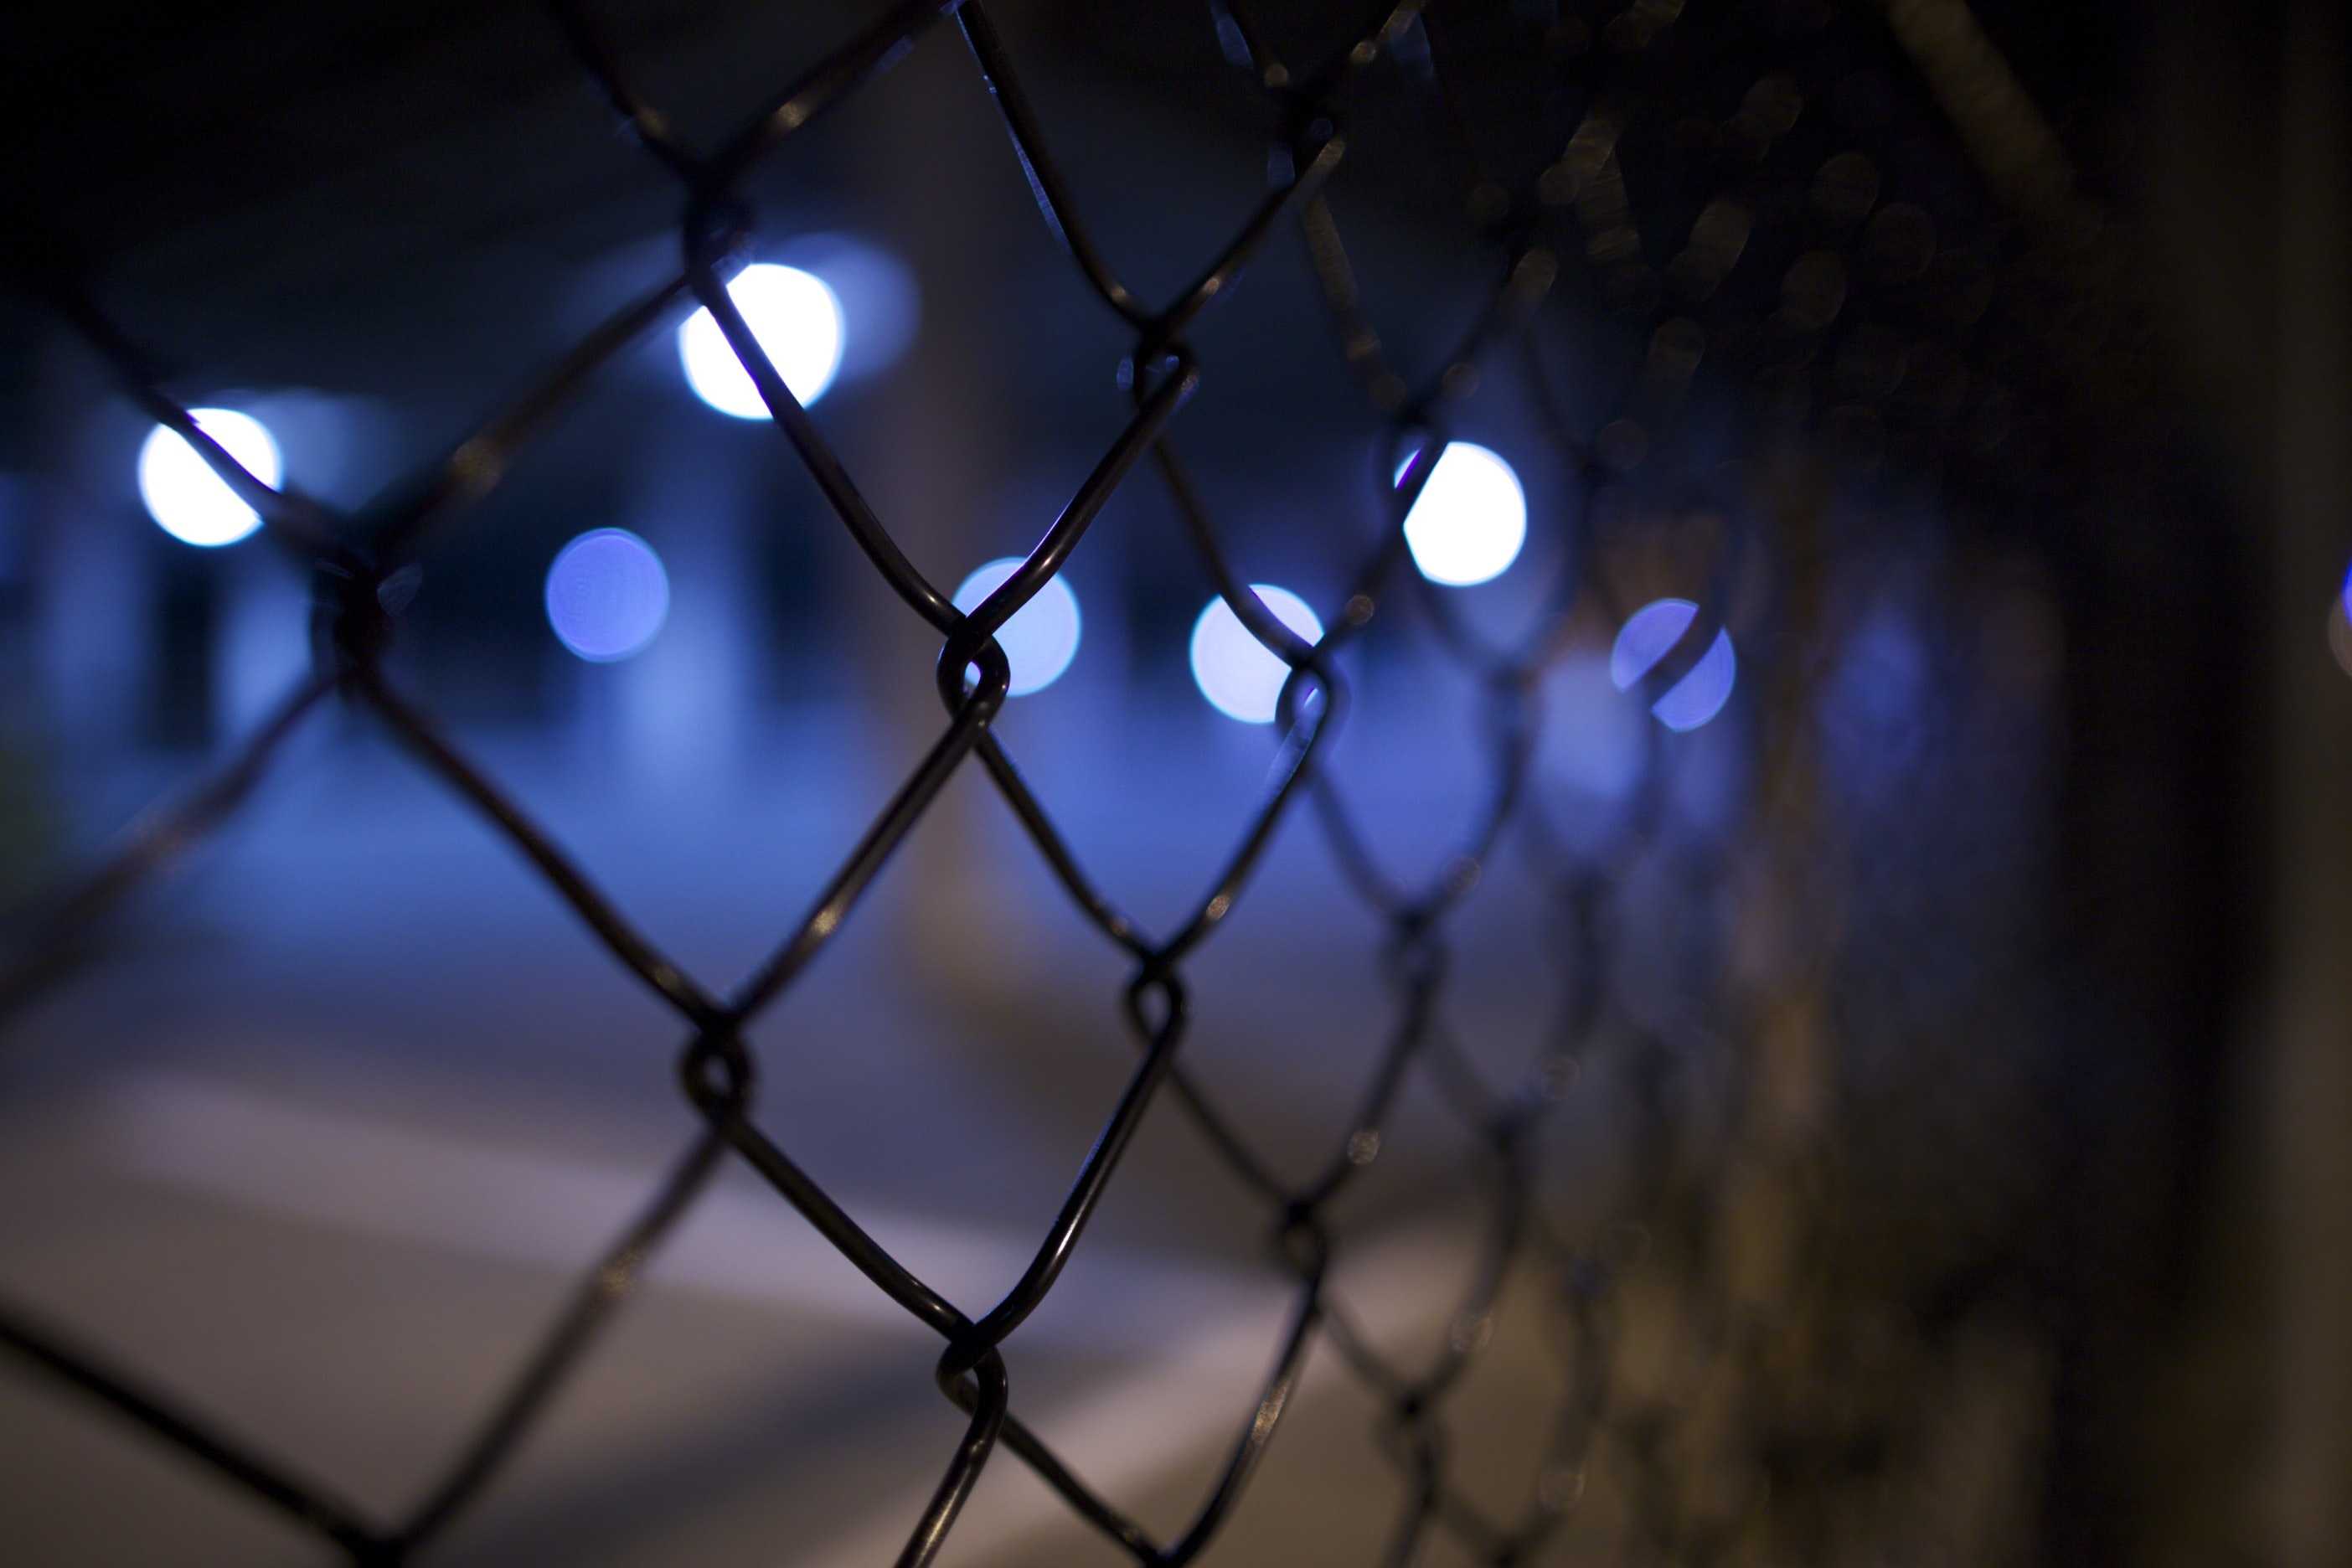 A chain link fence blocking several dots of blue and white light